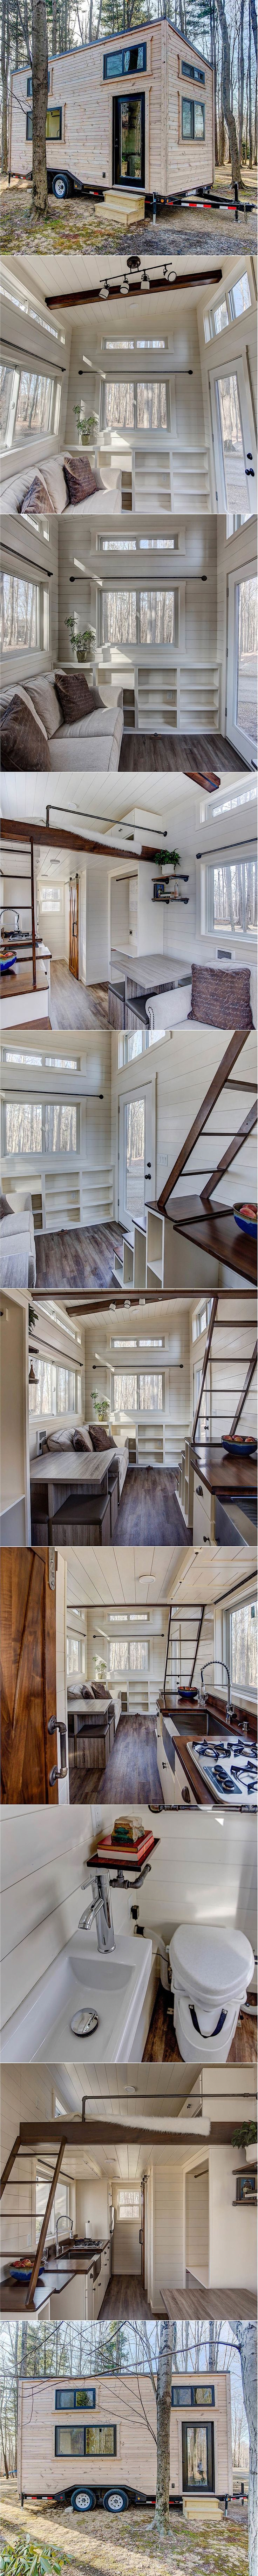 """The Mohican  @moderntinyliving ✨ """"We built the Mohican as one of our show units. This 20′ Tiny Home on Wheels has been named one of the Top 25 Tiny Homes in the United States by VacationIdea.com, and was featured on HGTV's """"Journey to the Tiny House Jamboree"""". The Mohican is a true testament to […]"""